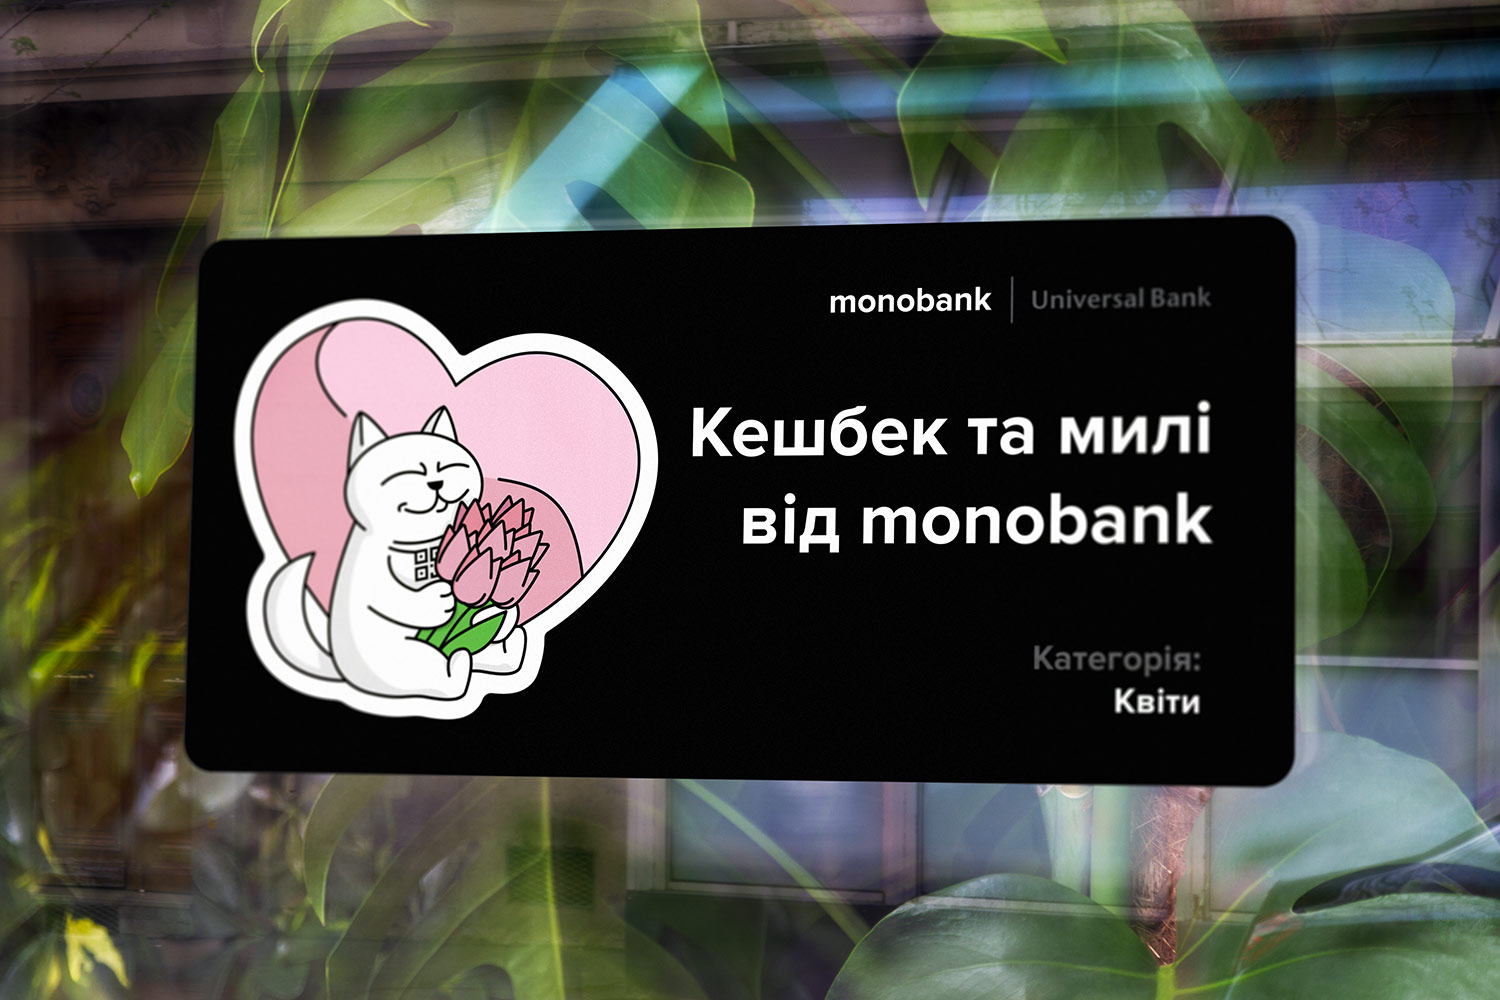 Cashback and miles from monobank. Category: flowers. Cute cat with flowers, sticker.